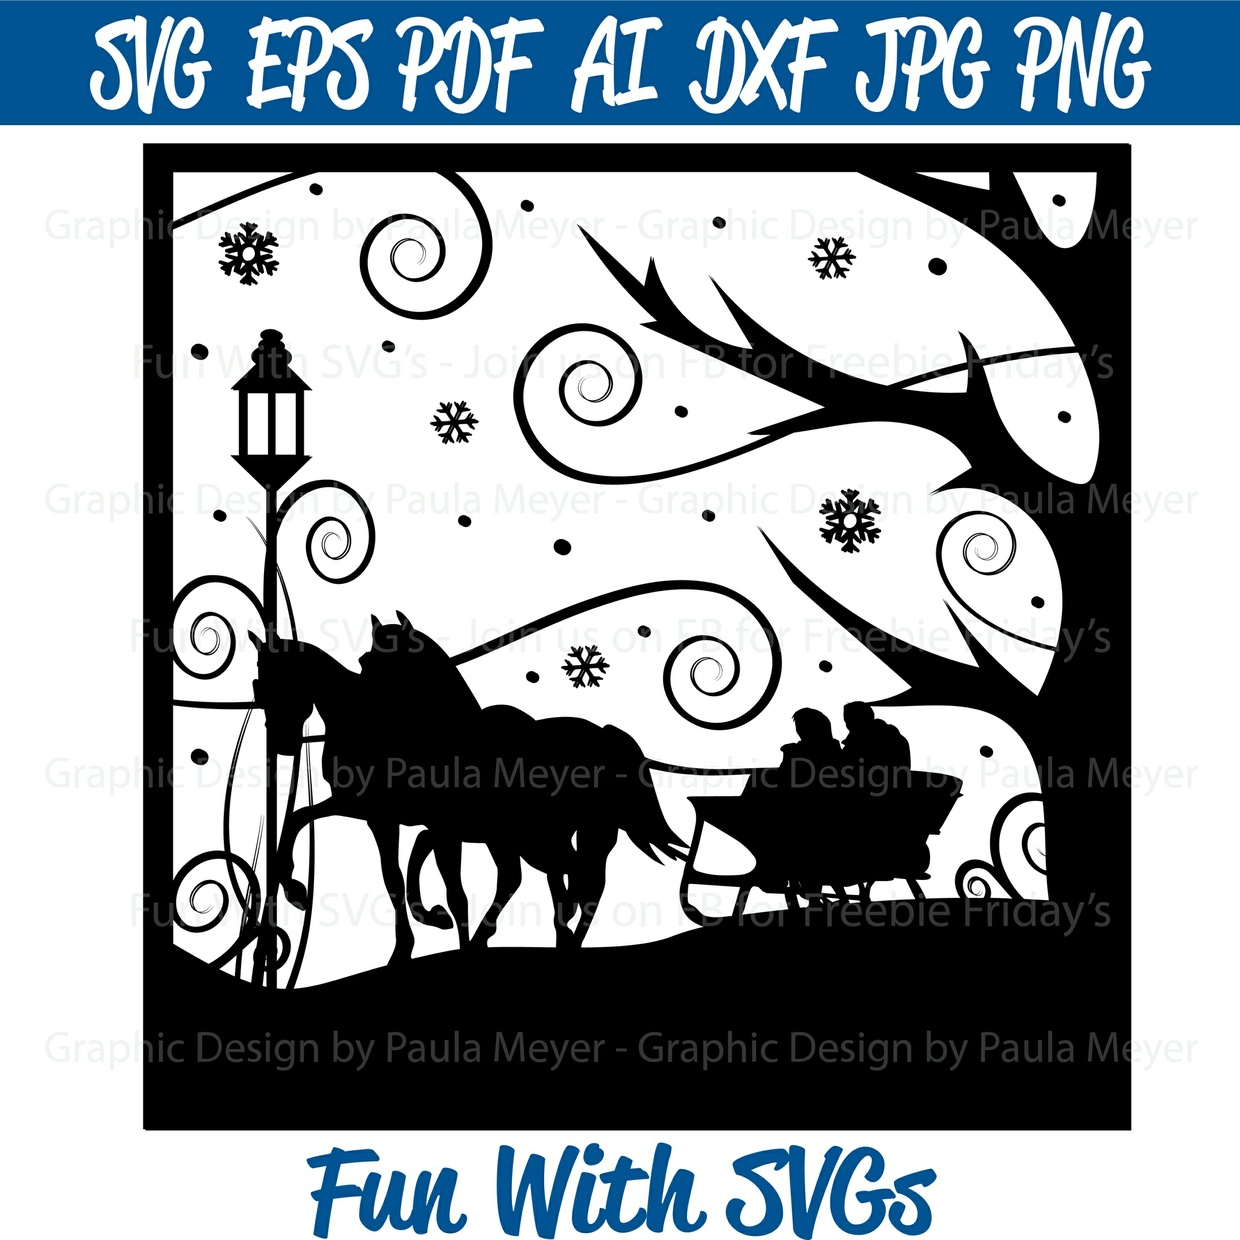 Two Horse Open Sleigh - SVG Cut File, High Resolution Printable Graphics and Editable Vector Art